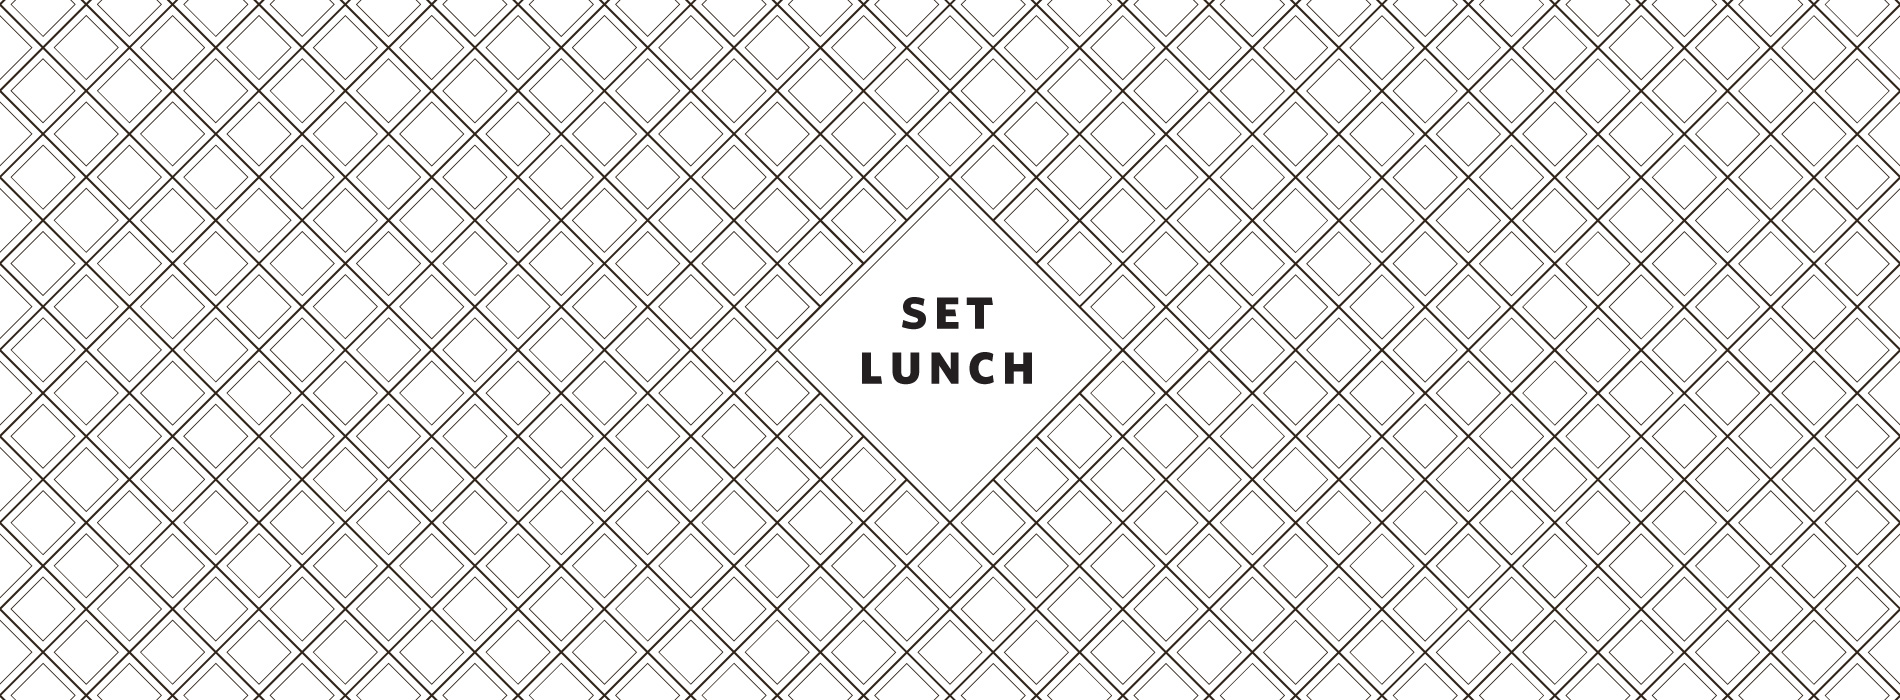 Set Lunch